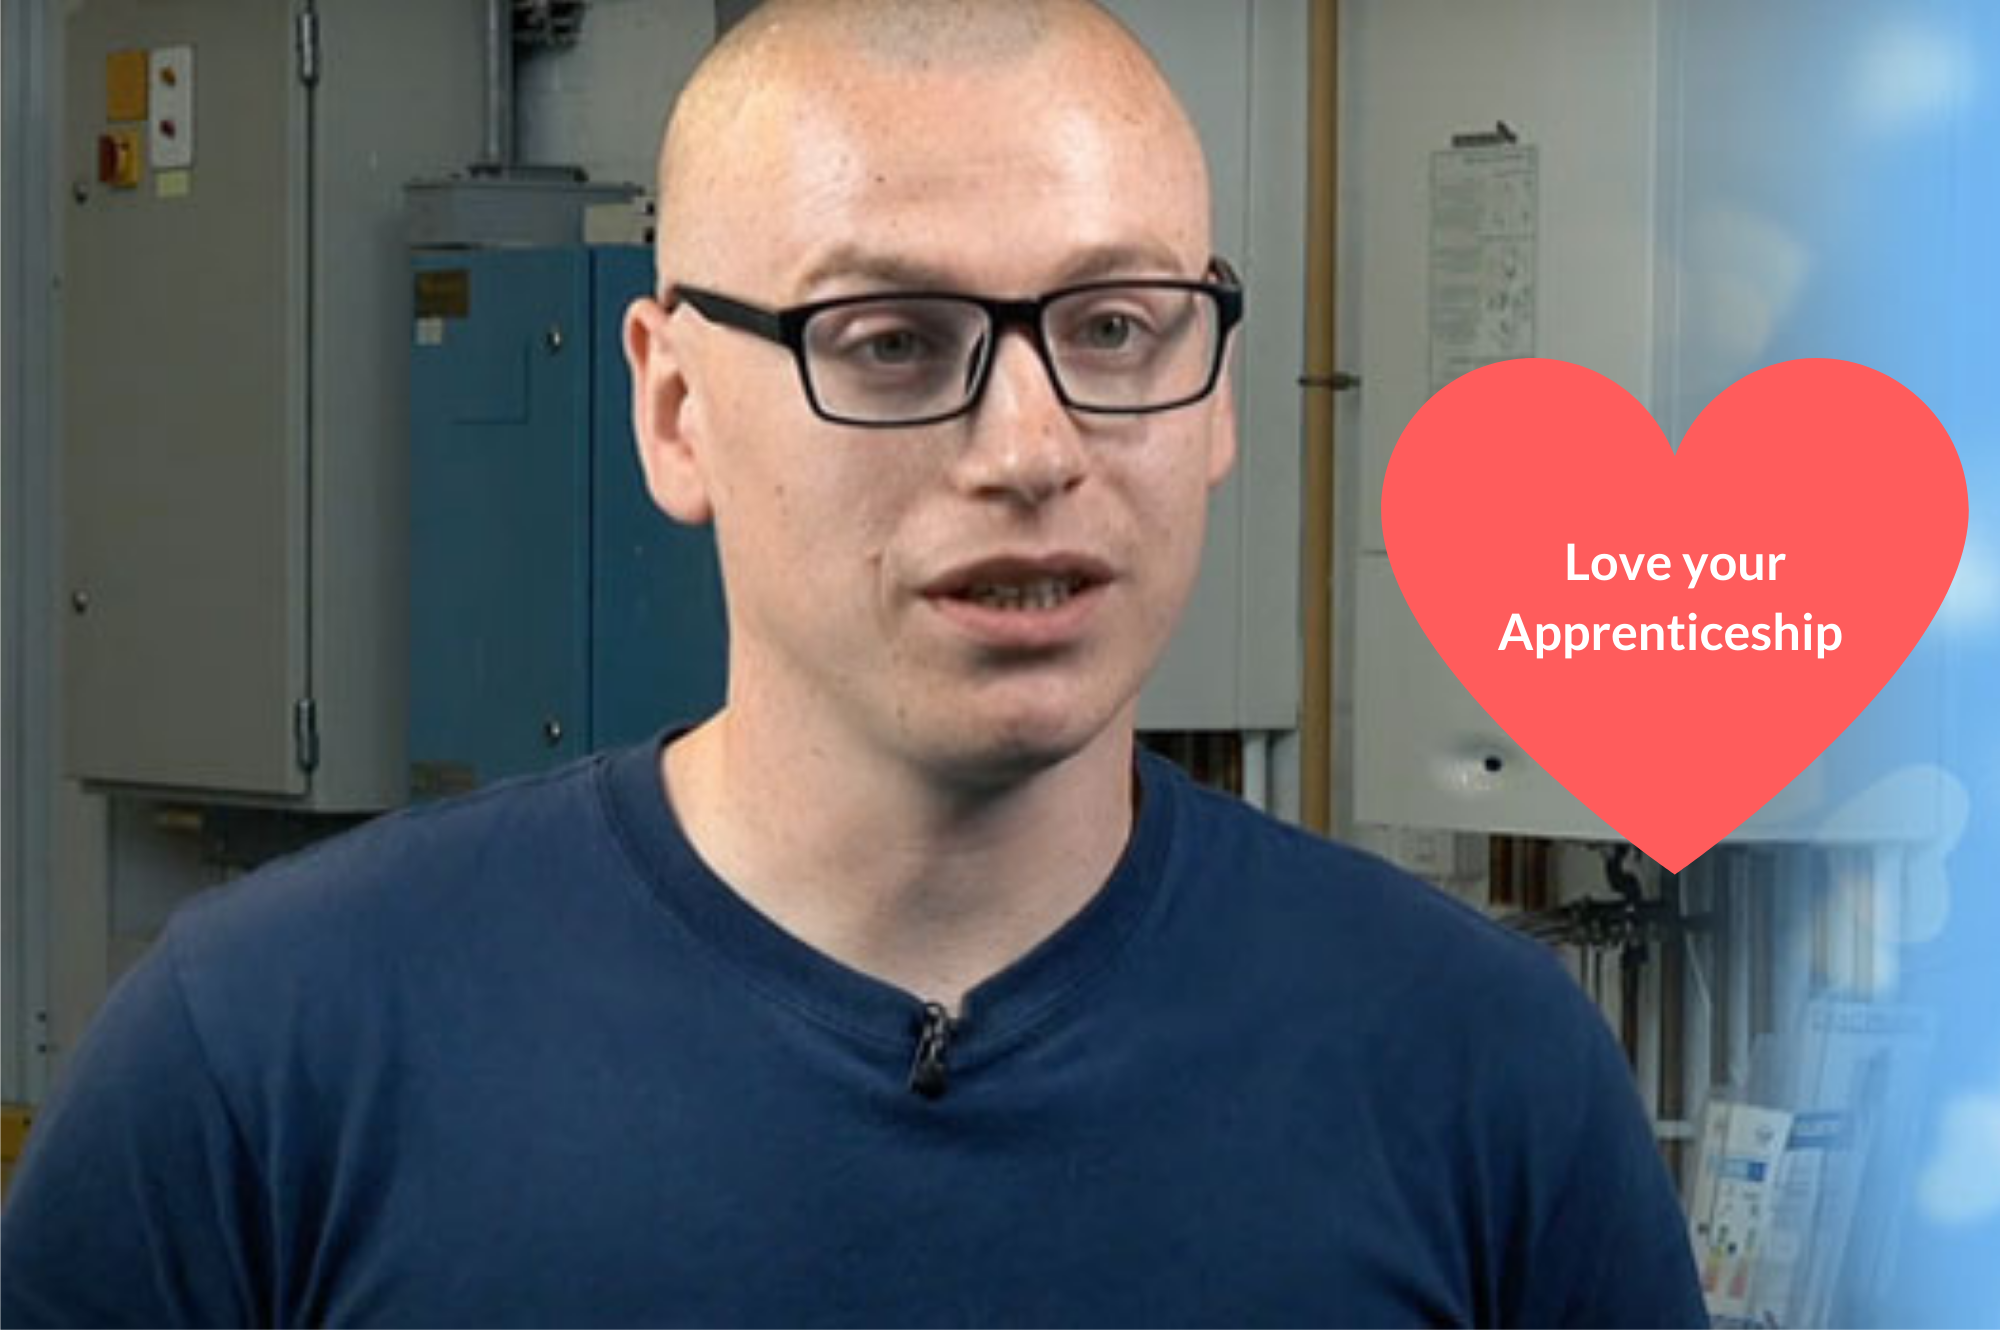 Are you loving your apprenticeship like Dale?